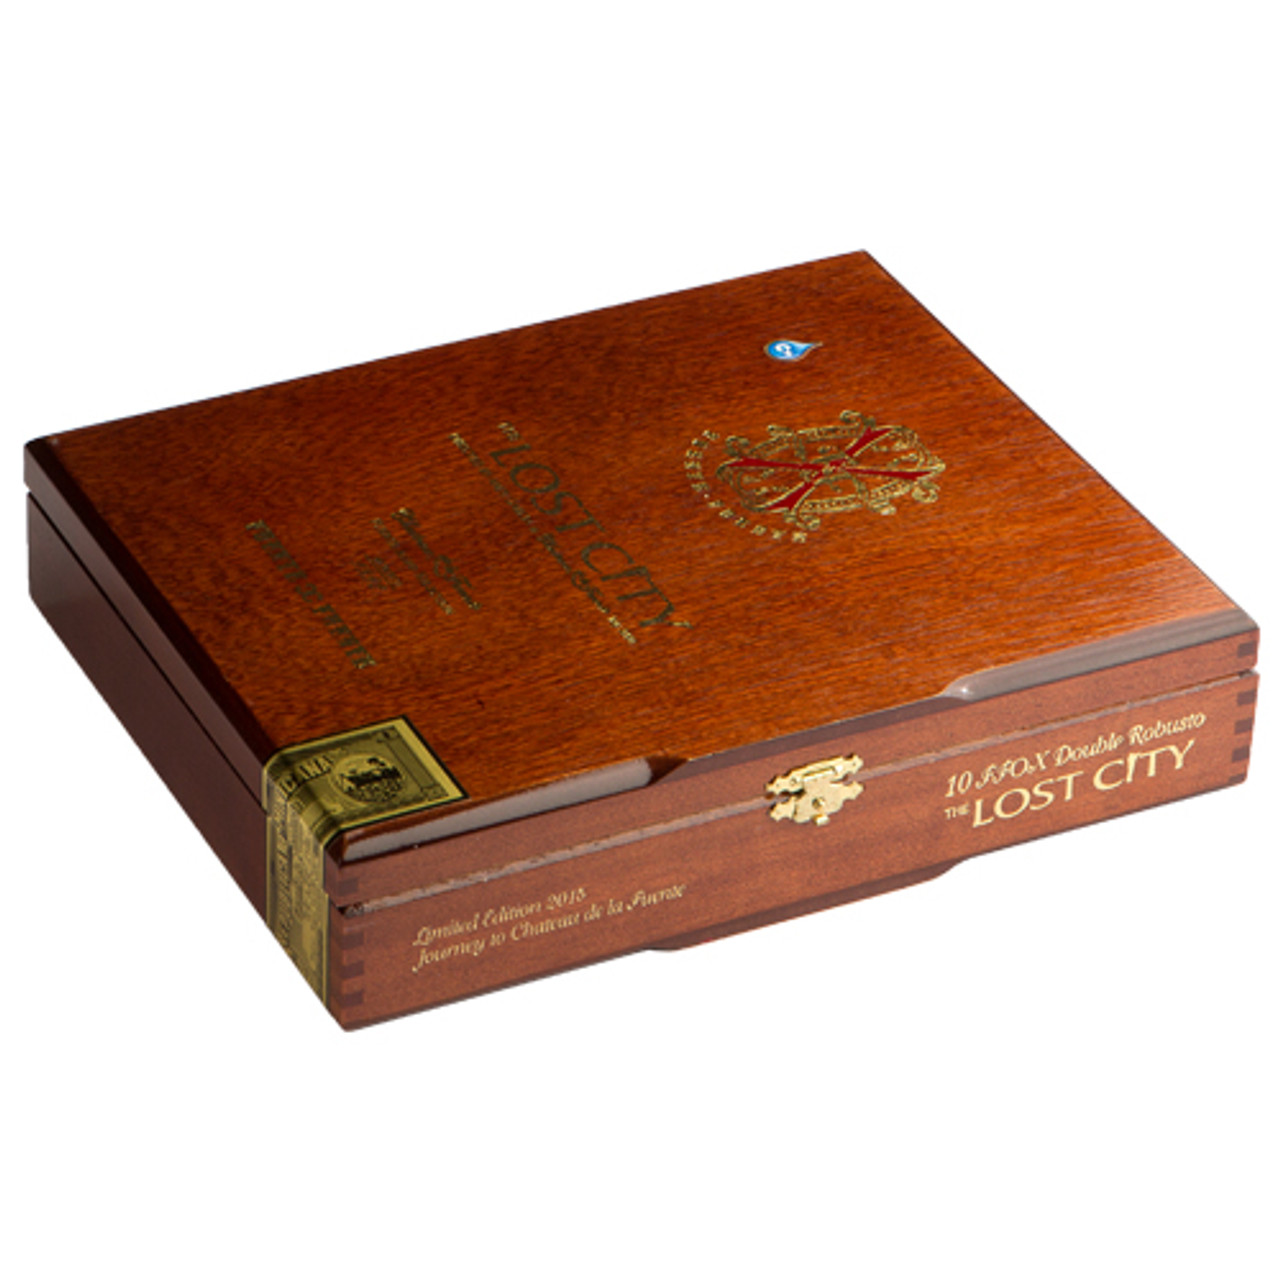 Fuente Fuente Opus X The Lost City Double Robusto Cigars - 5.75 x 52 (Box of 10)